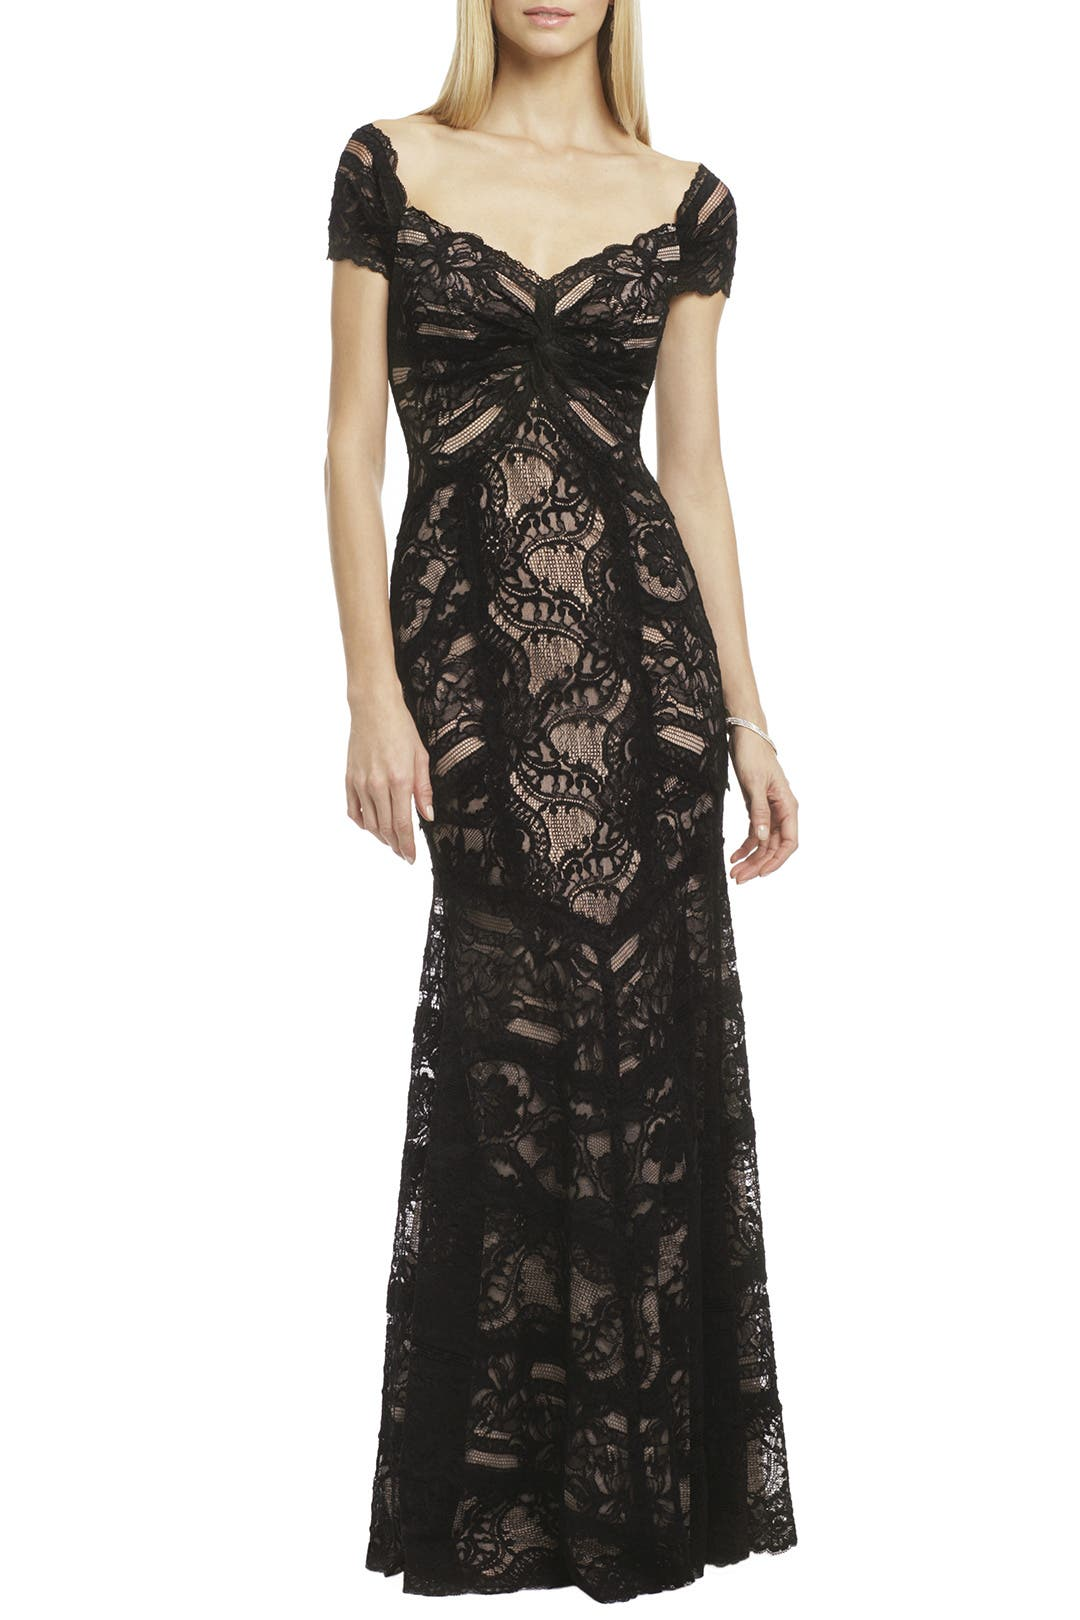 7b1ca62d6 Tempted by You Gown by Nicole Miller for $75 - $90 | Rent the Runway